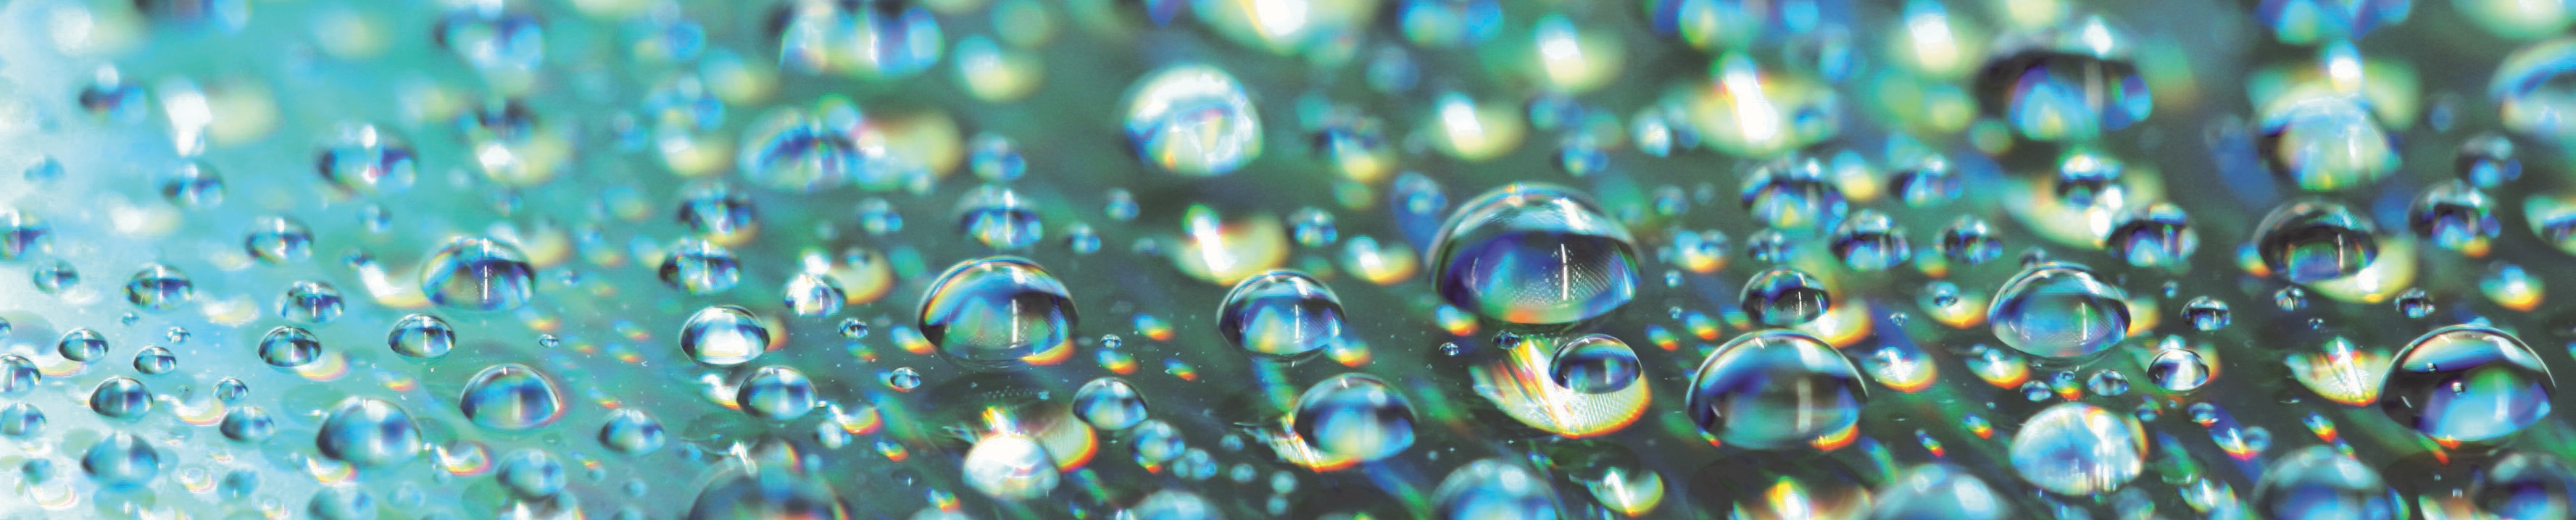 Emerging Pollutants in Water and Wastewater